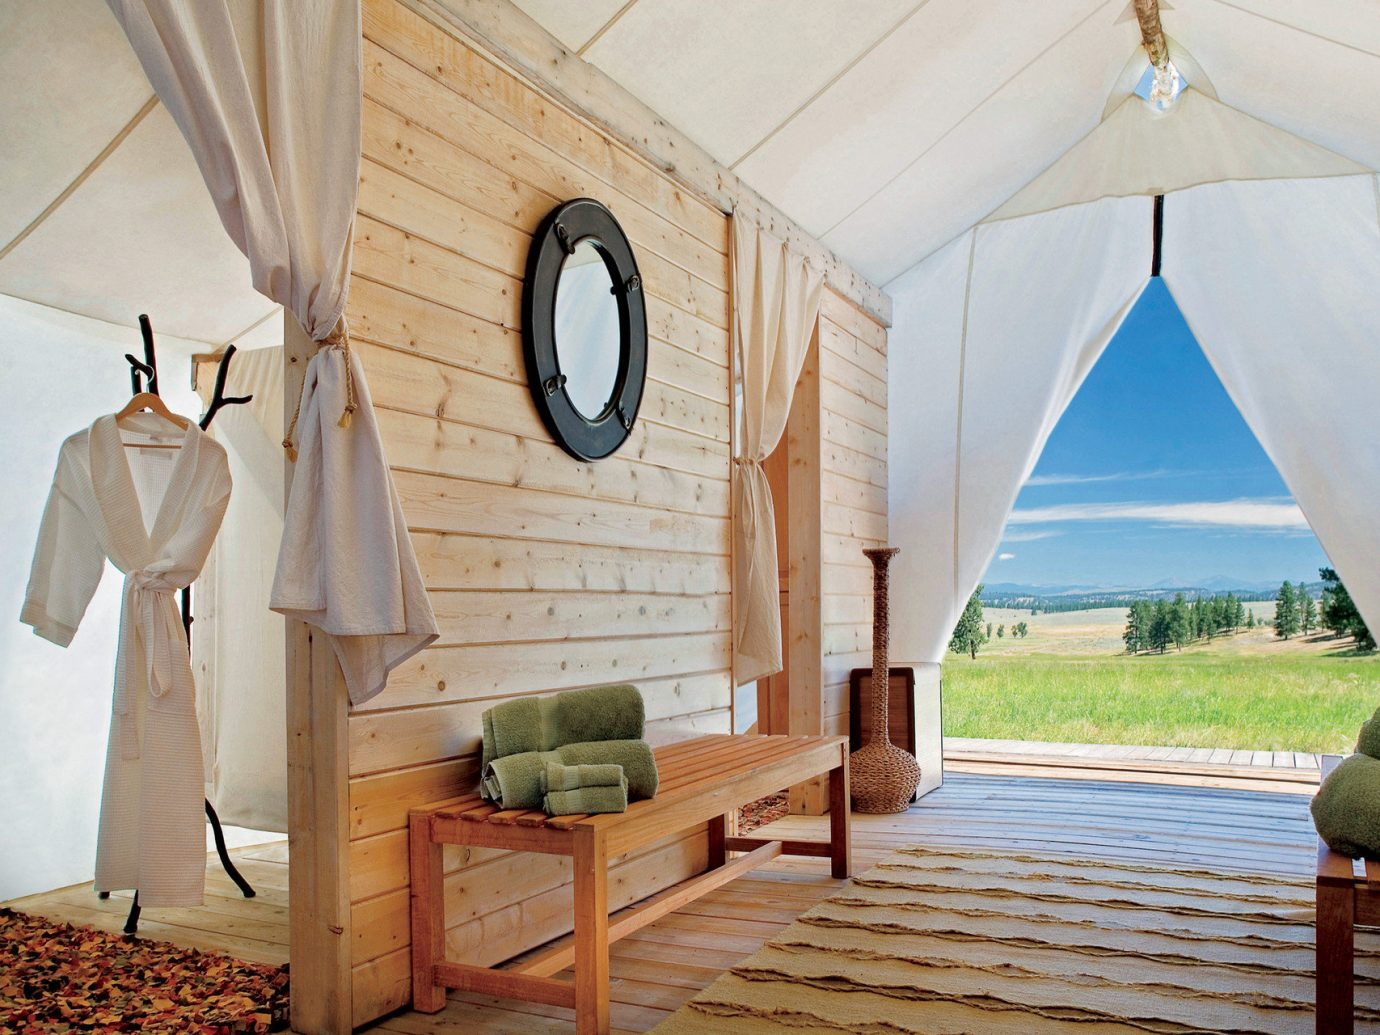 Glamping Luxury Travel Outdoors + Adventure Trip Ideas Weekend Getaways indoor room house Architecture home estate interior design cottage wood farmhouse Villa arch furniture